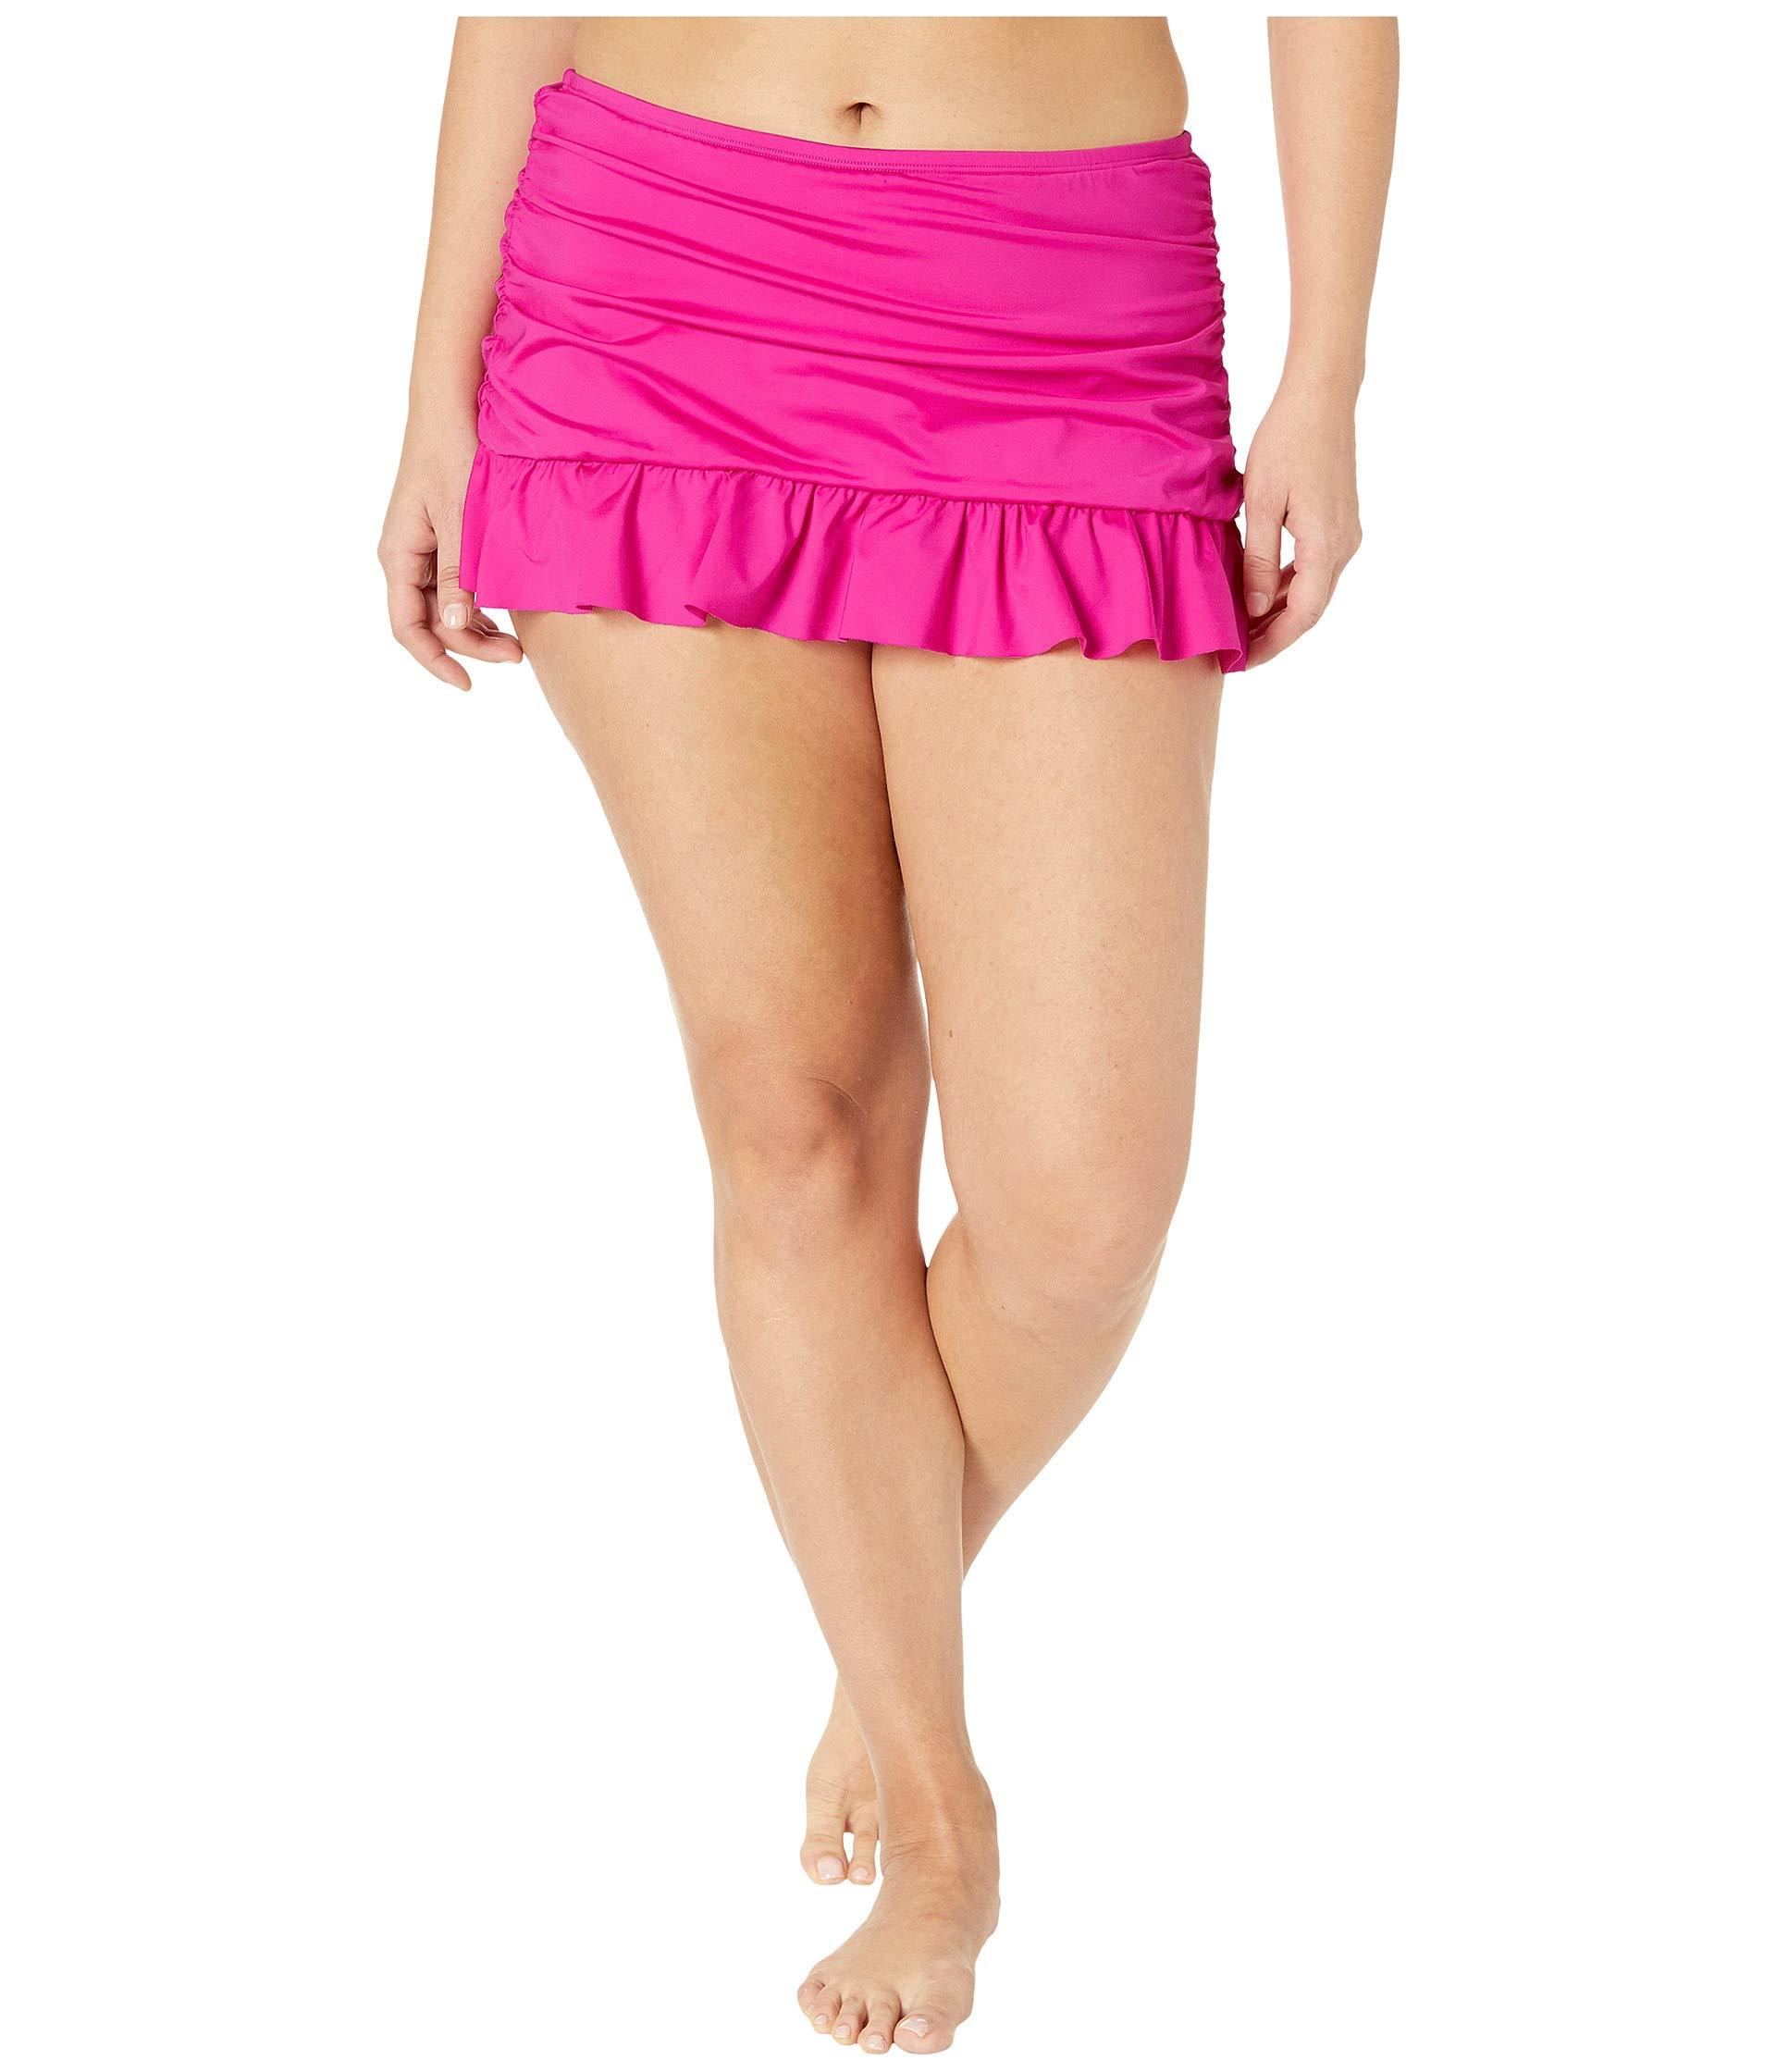 b8106529f6d42 Kenneth Cole Plus Size Ruffle-licious Ruched Skirt (passionfruit ...